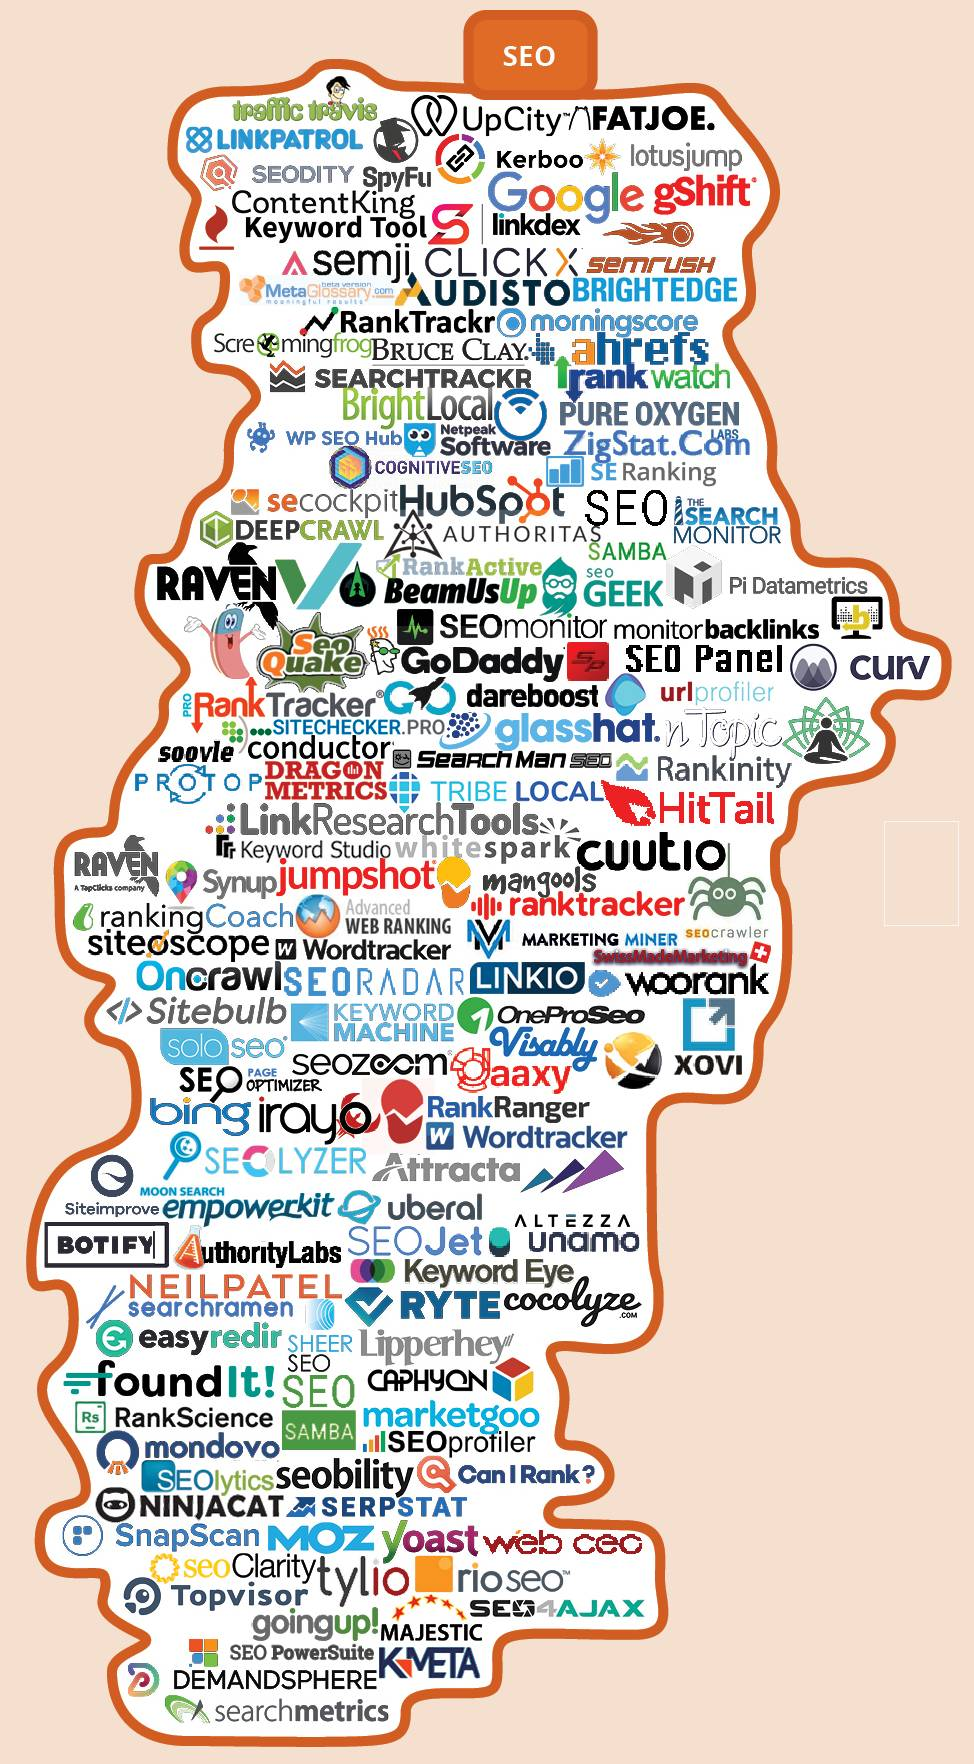 More than 100 company logos within the SEO category of the marketing technology landscape, according to chiefmartec.com.